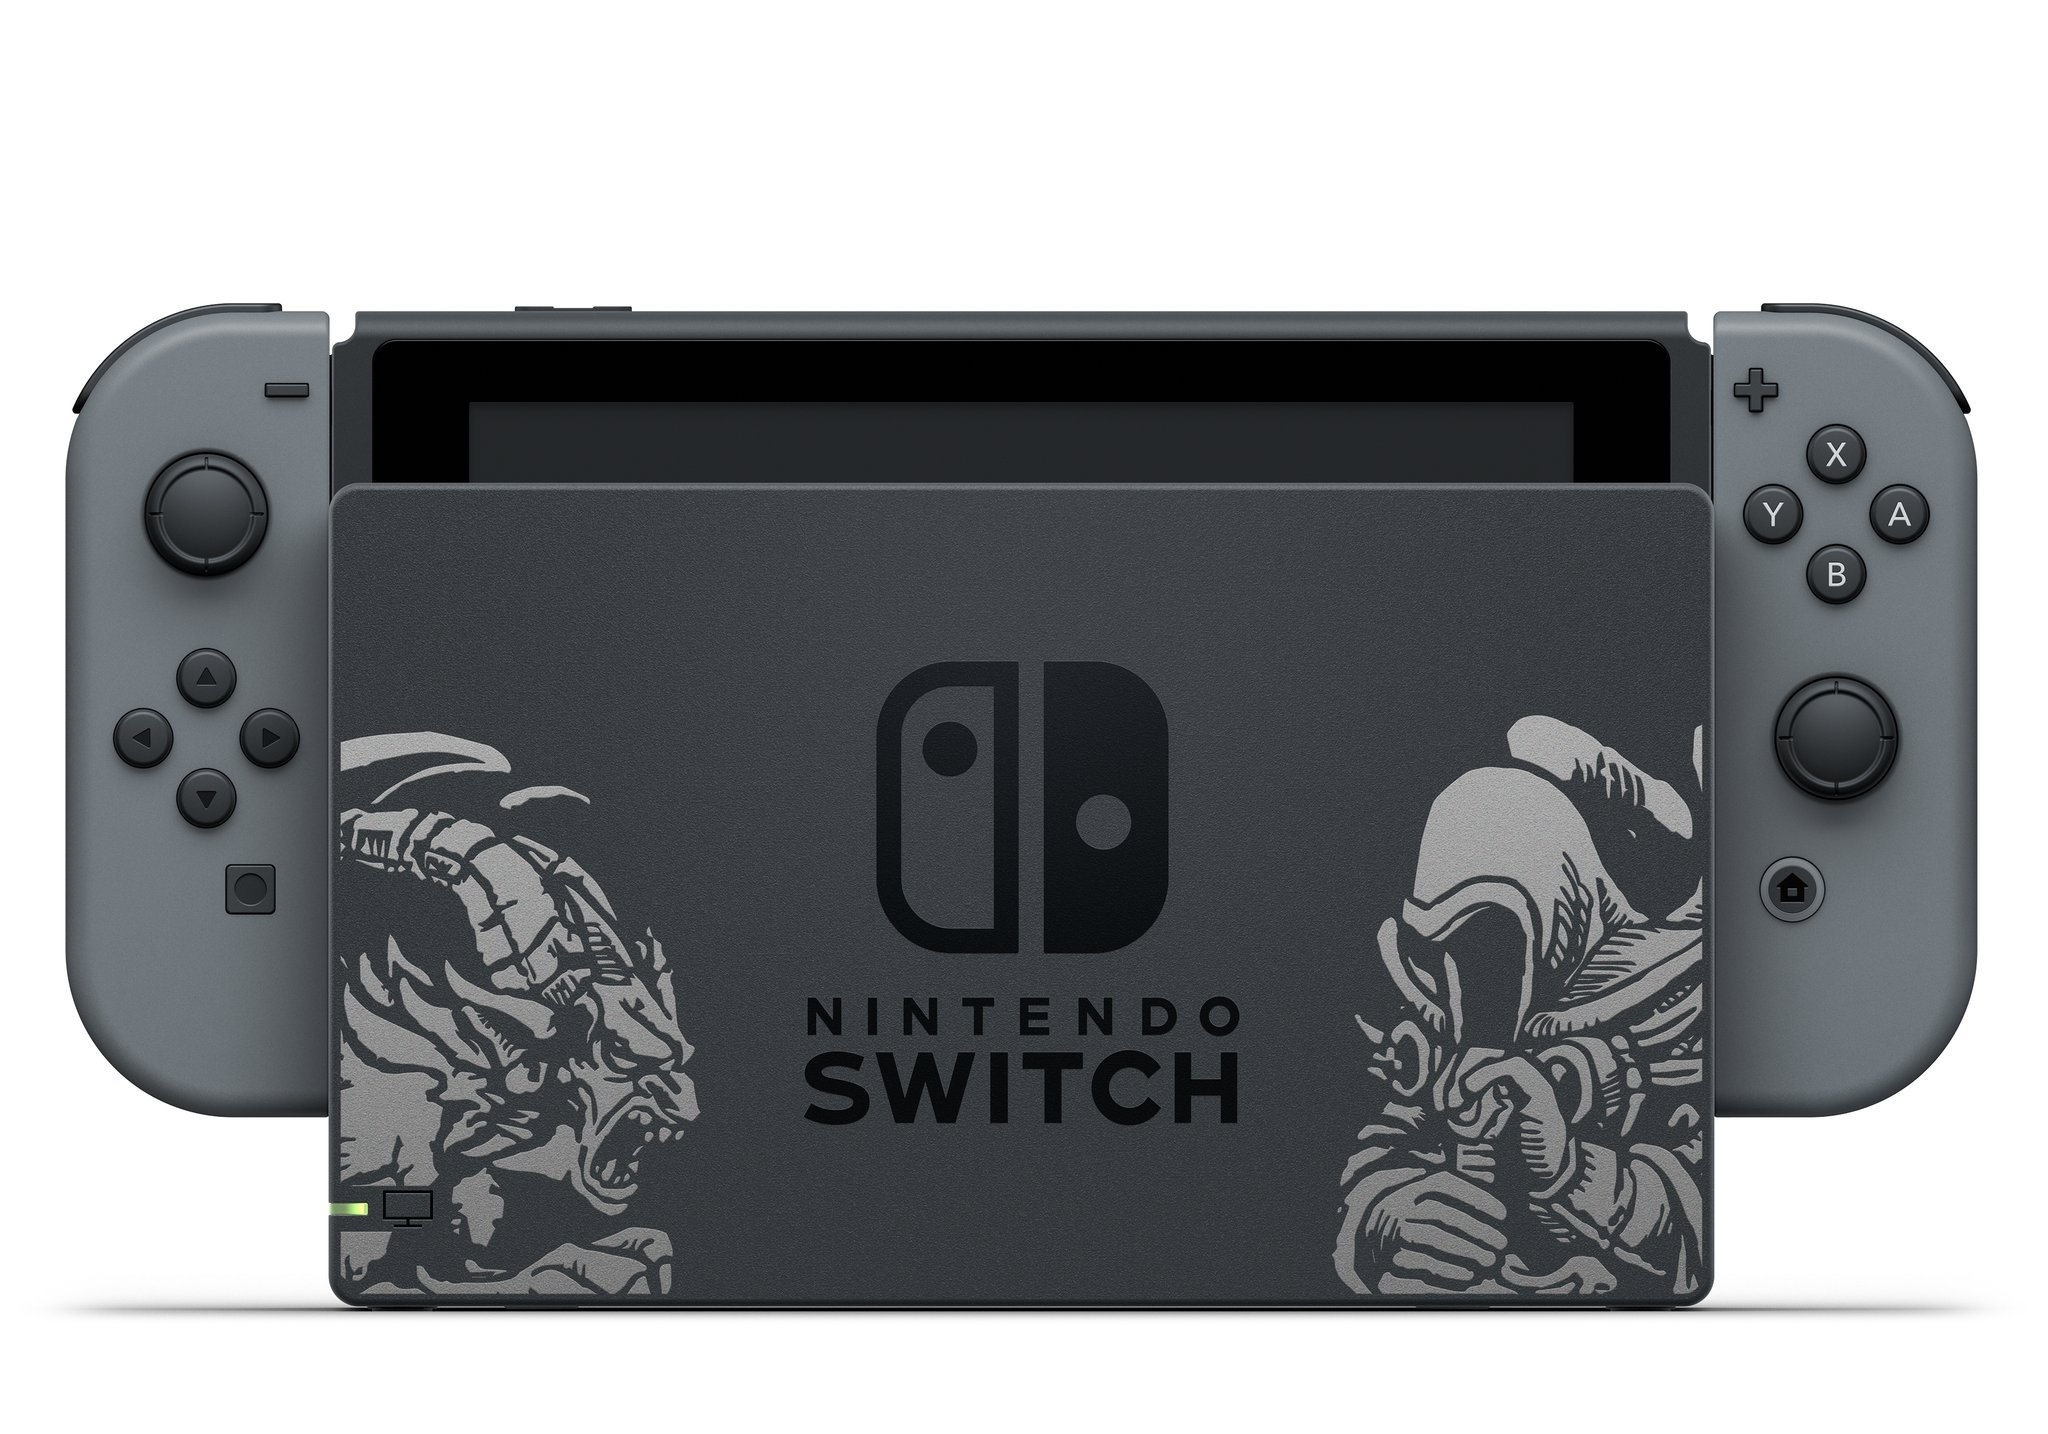 Diablo III: Eternal Collection Nintendo Switch bundle revealed by GameStop